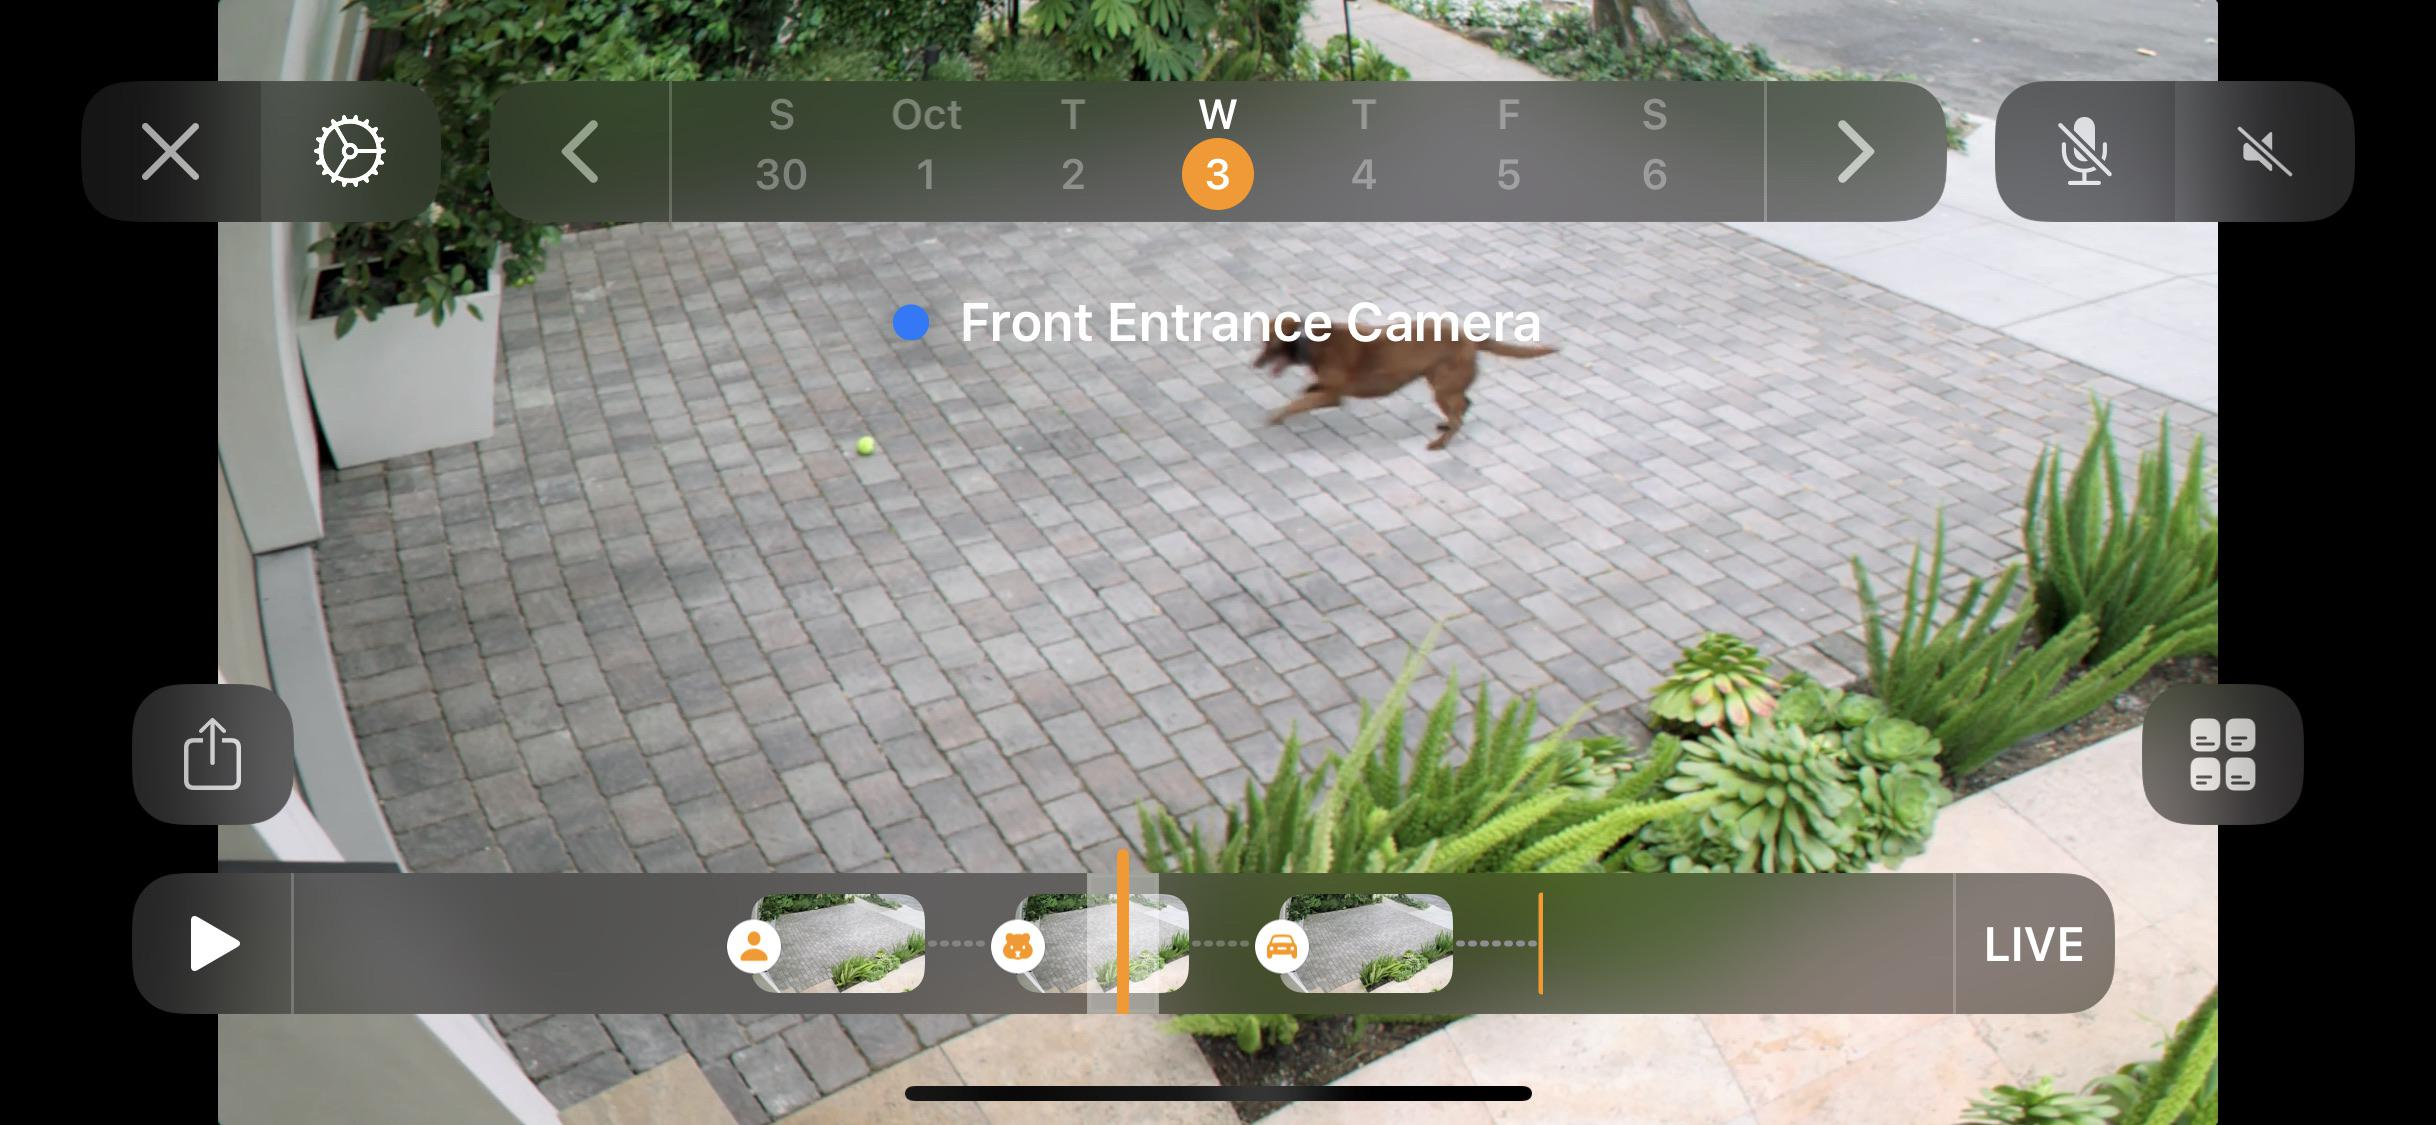 Image shows an early look at HomeKit's Secure Video UI